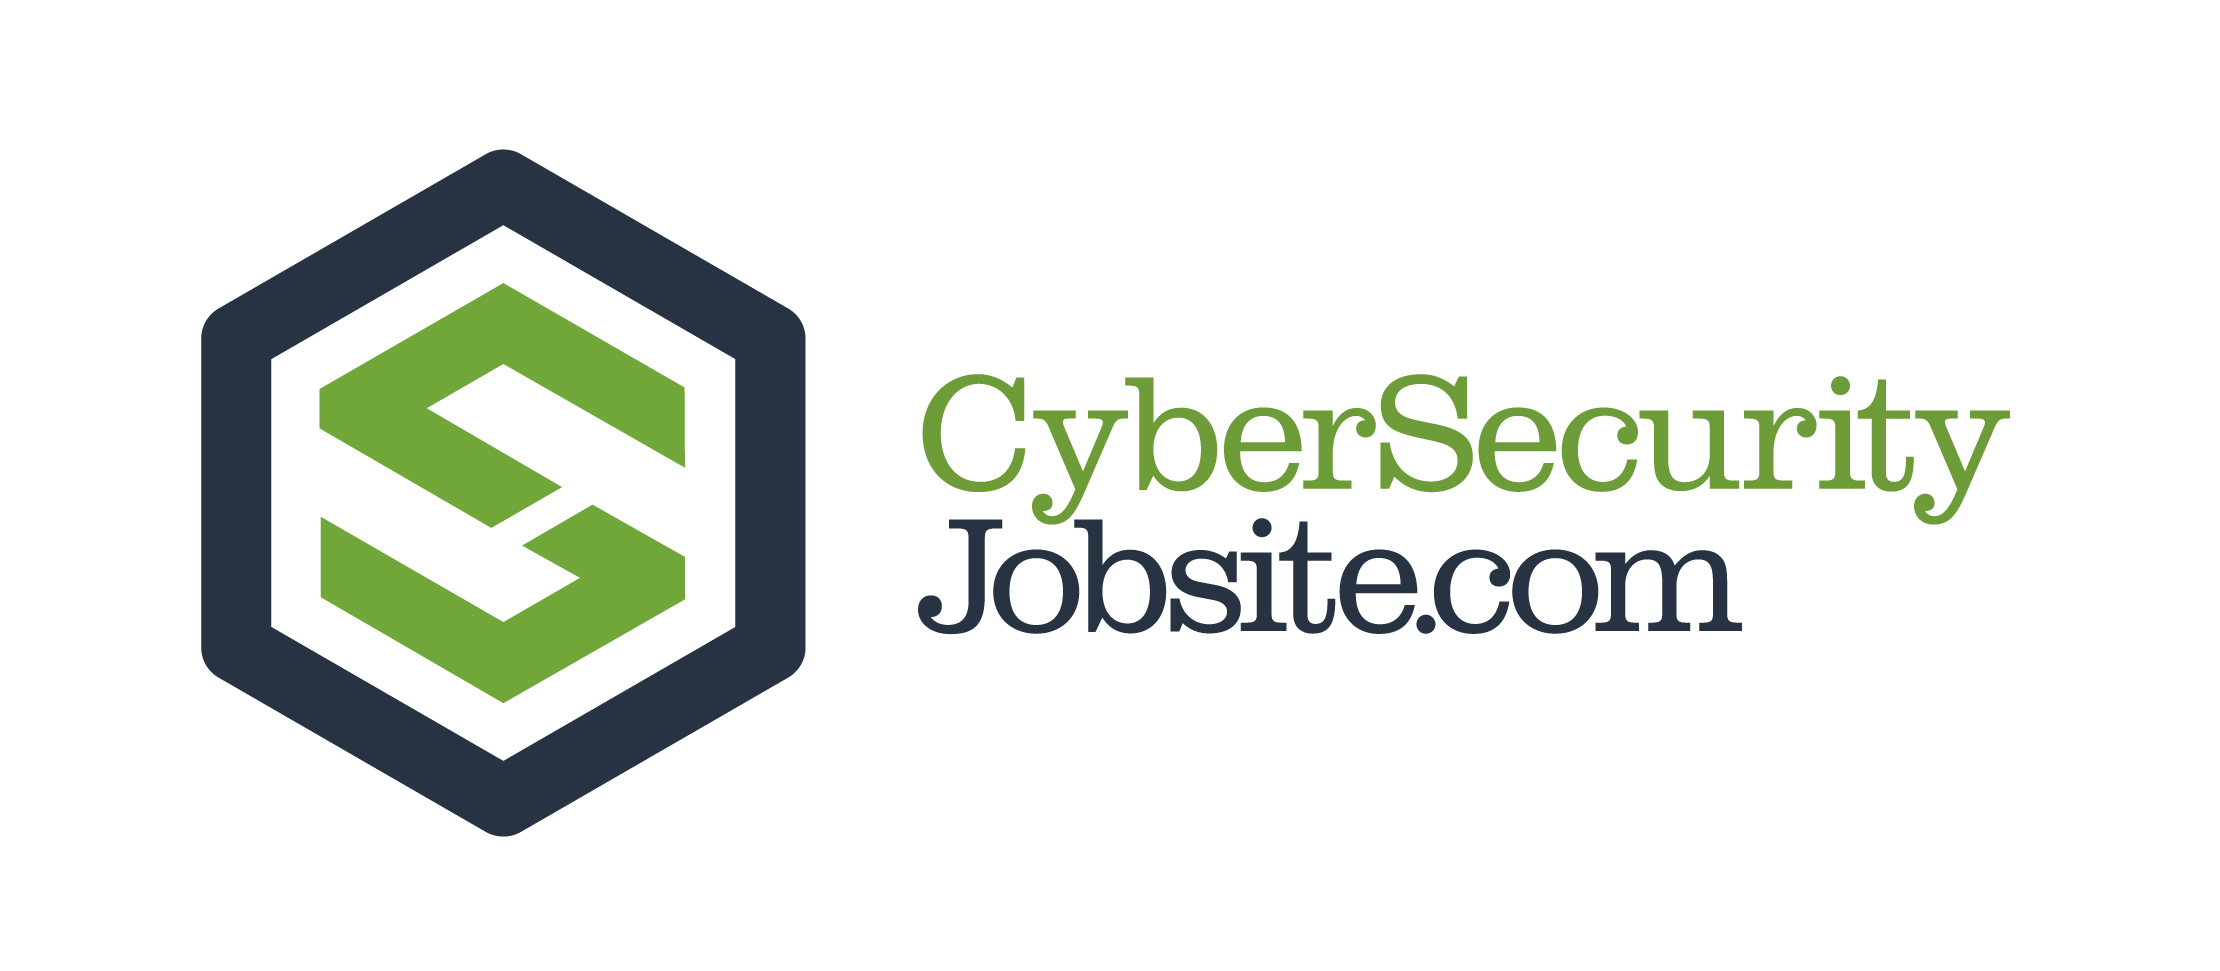 Cyber Security Jobsite.com